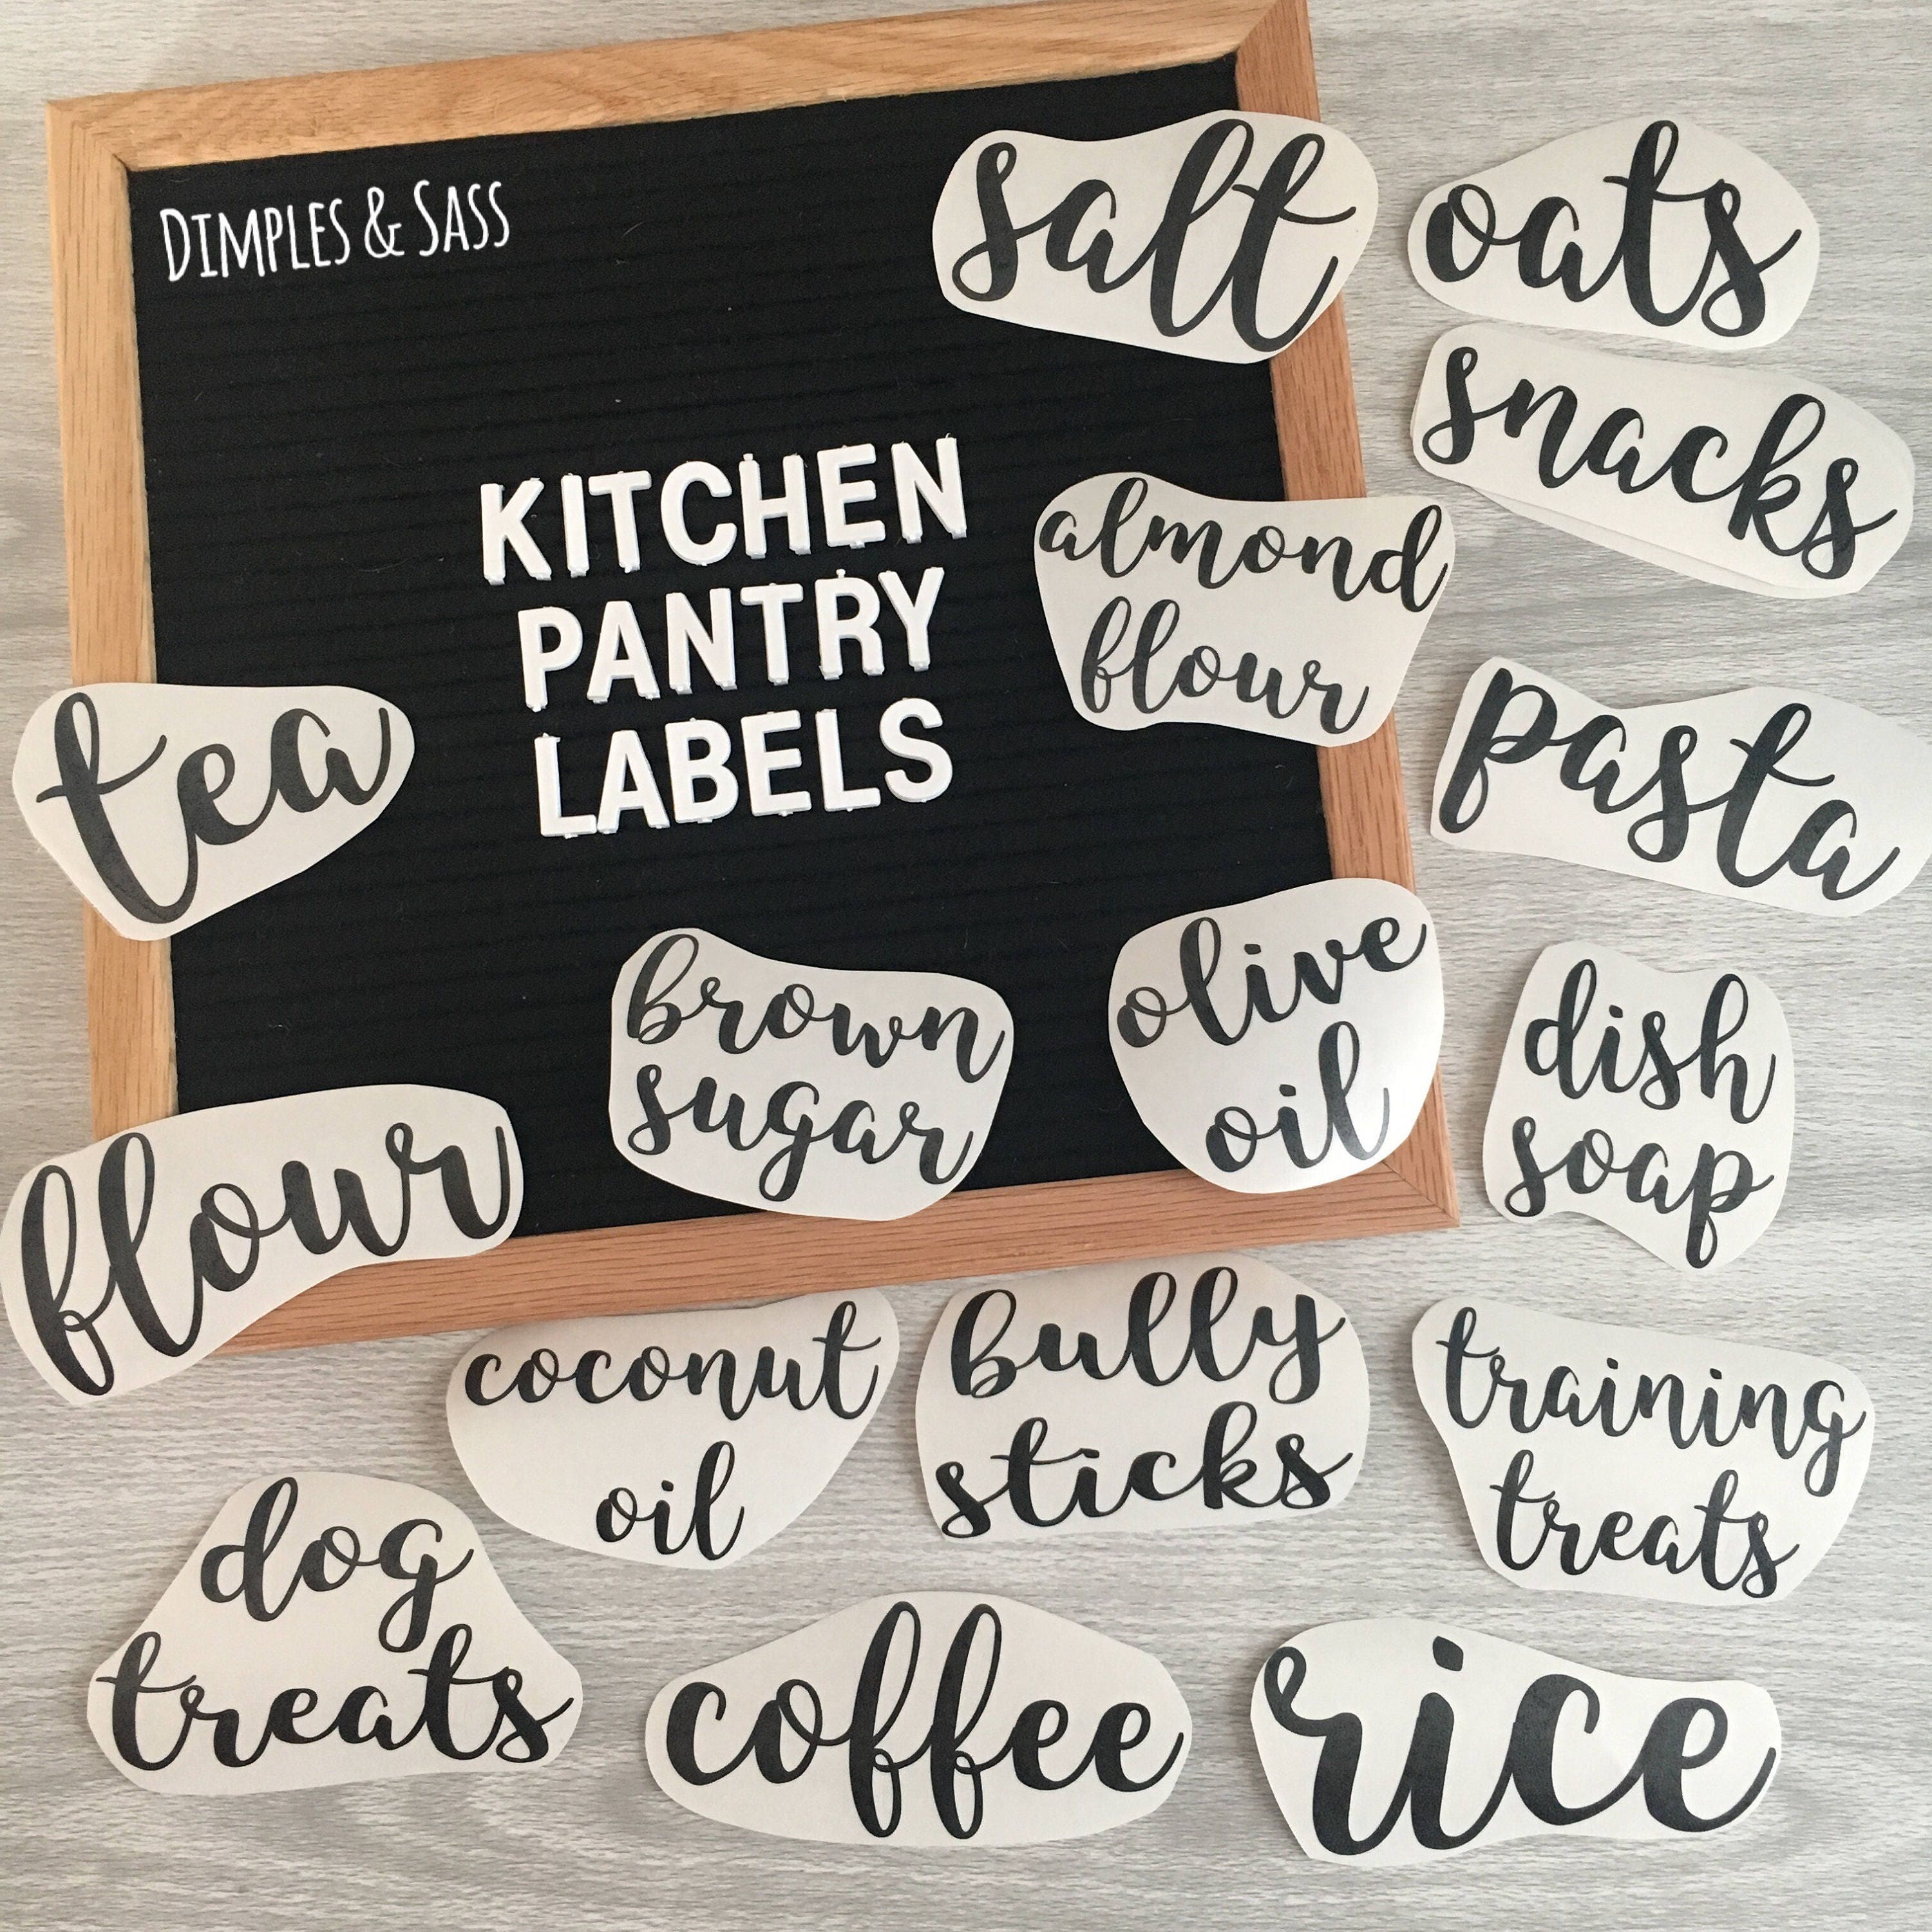 Kitchen Container Organizational Labels Customizable Pantry